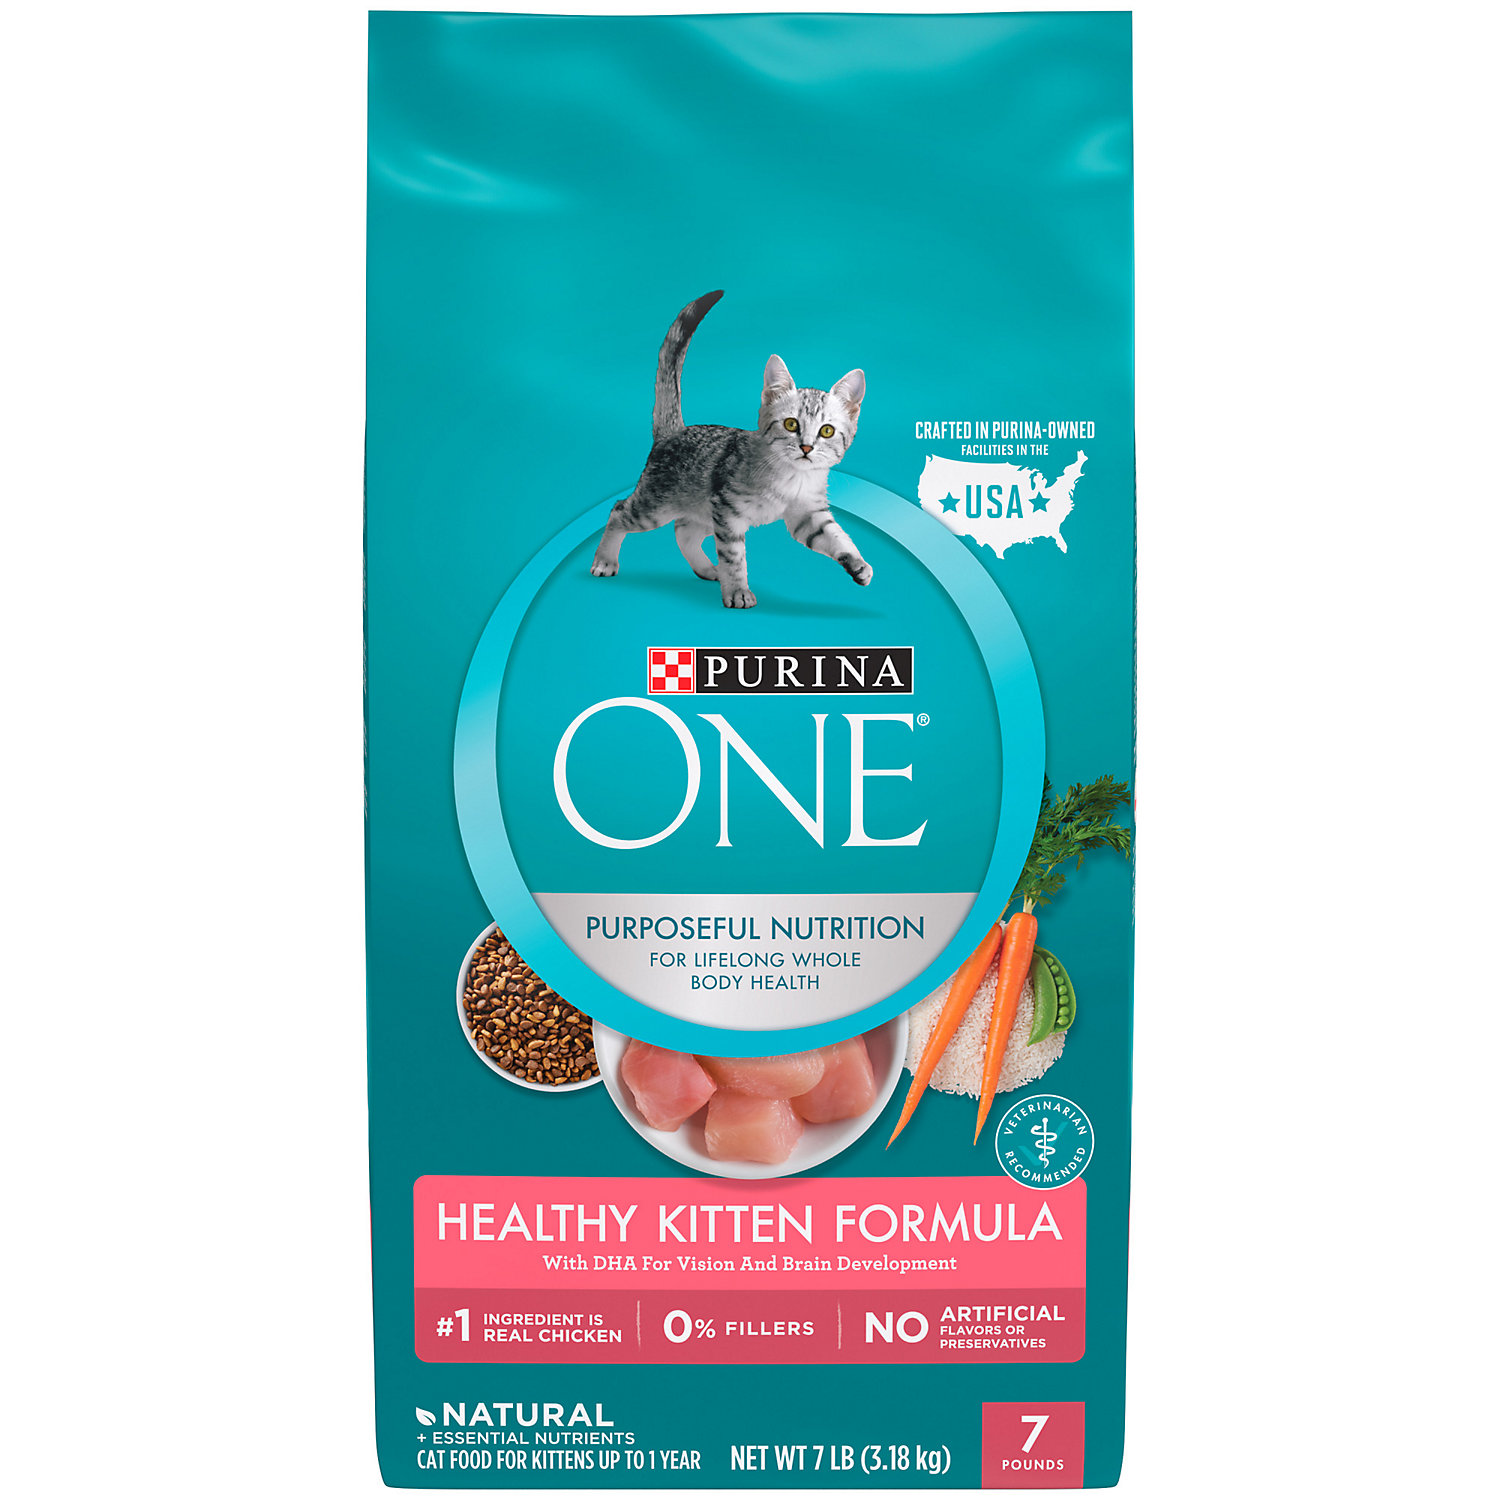 Purina One Growth Development Kitten Food 7 Lbs.